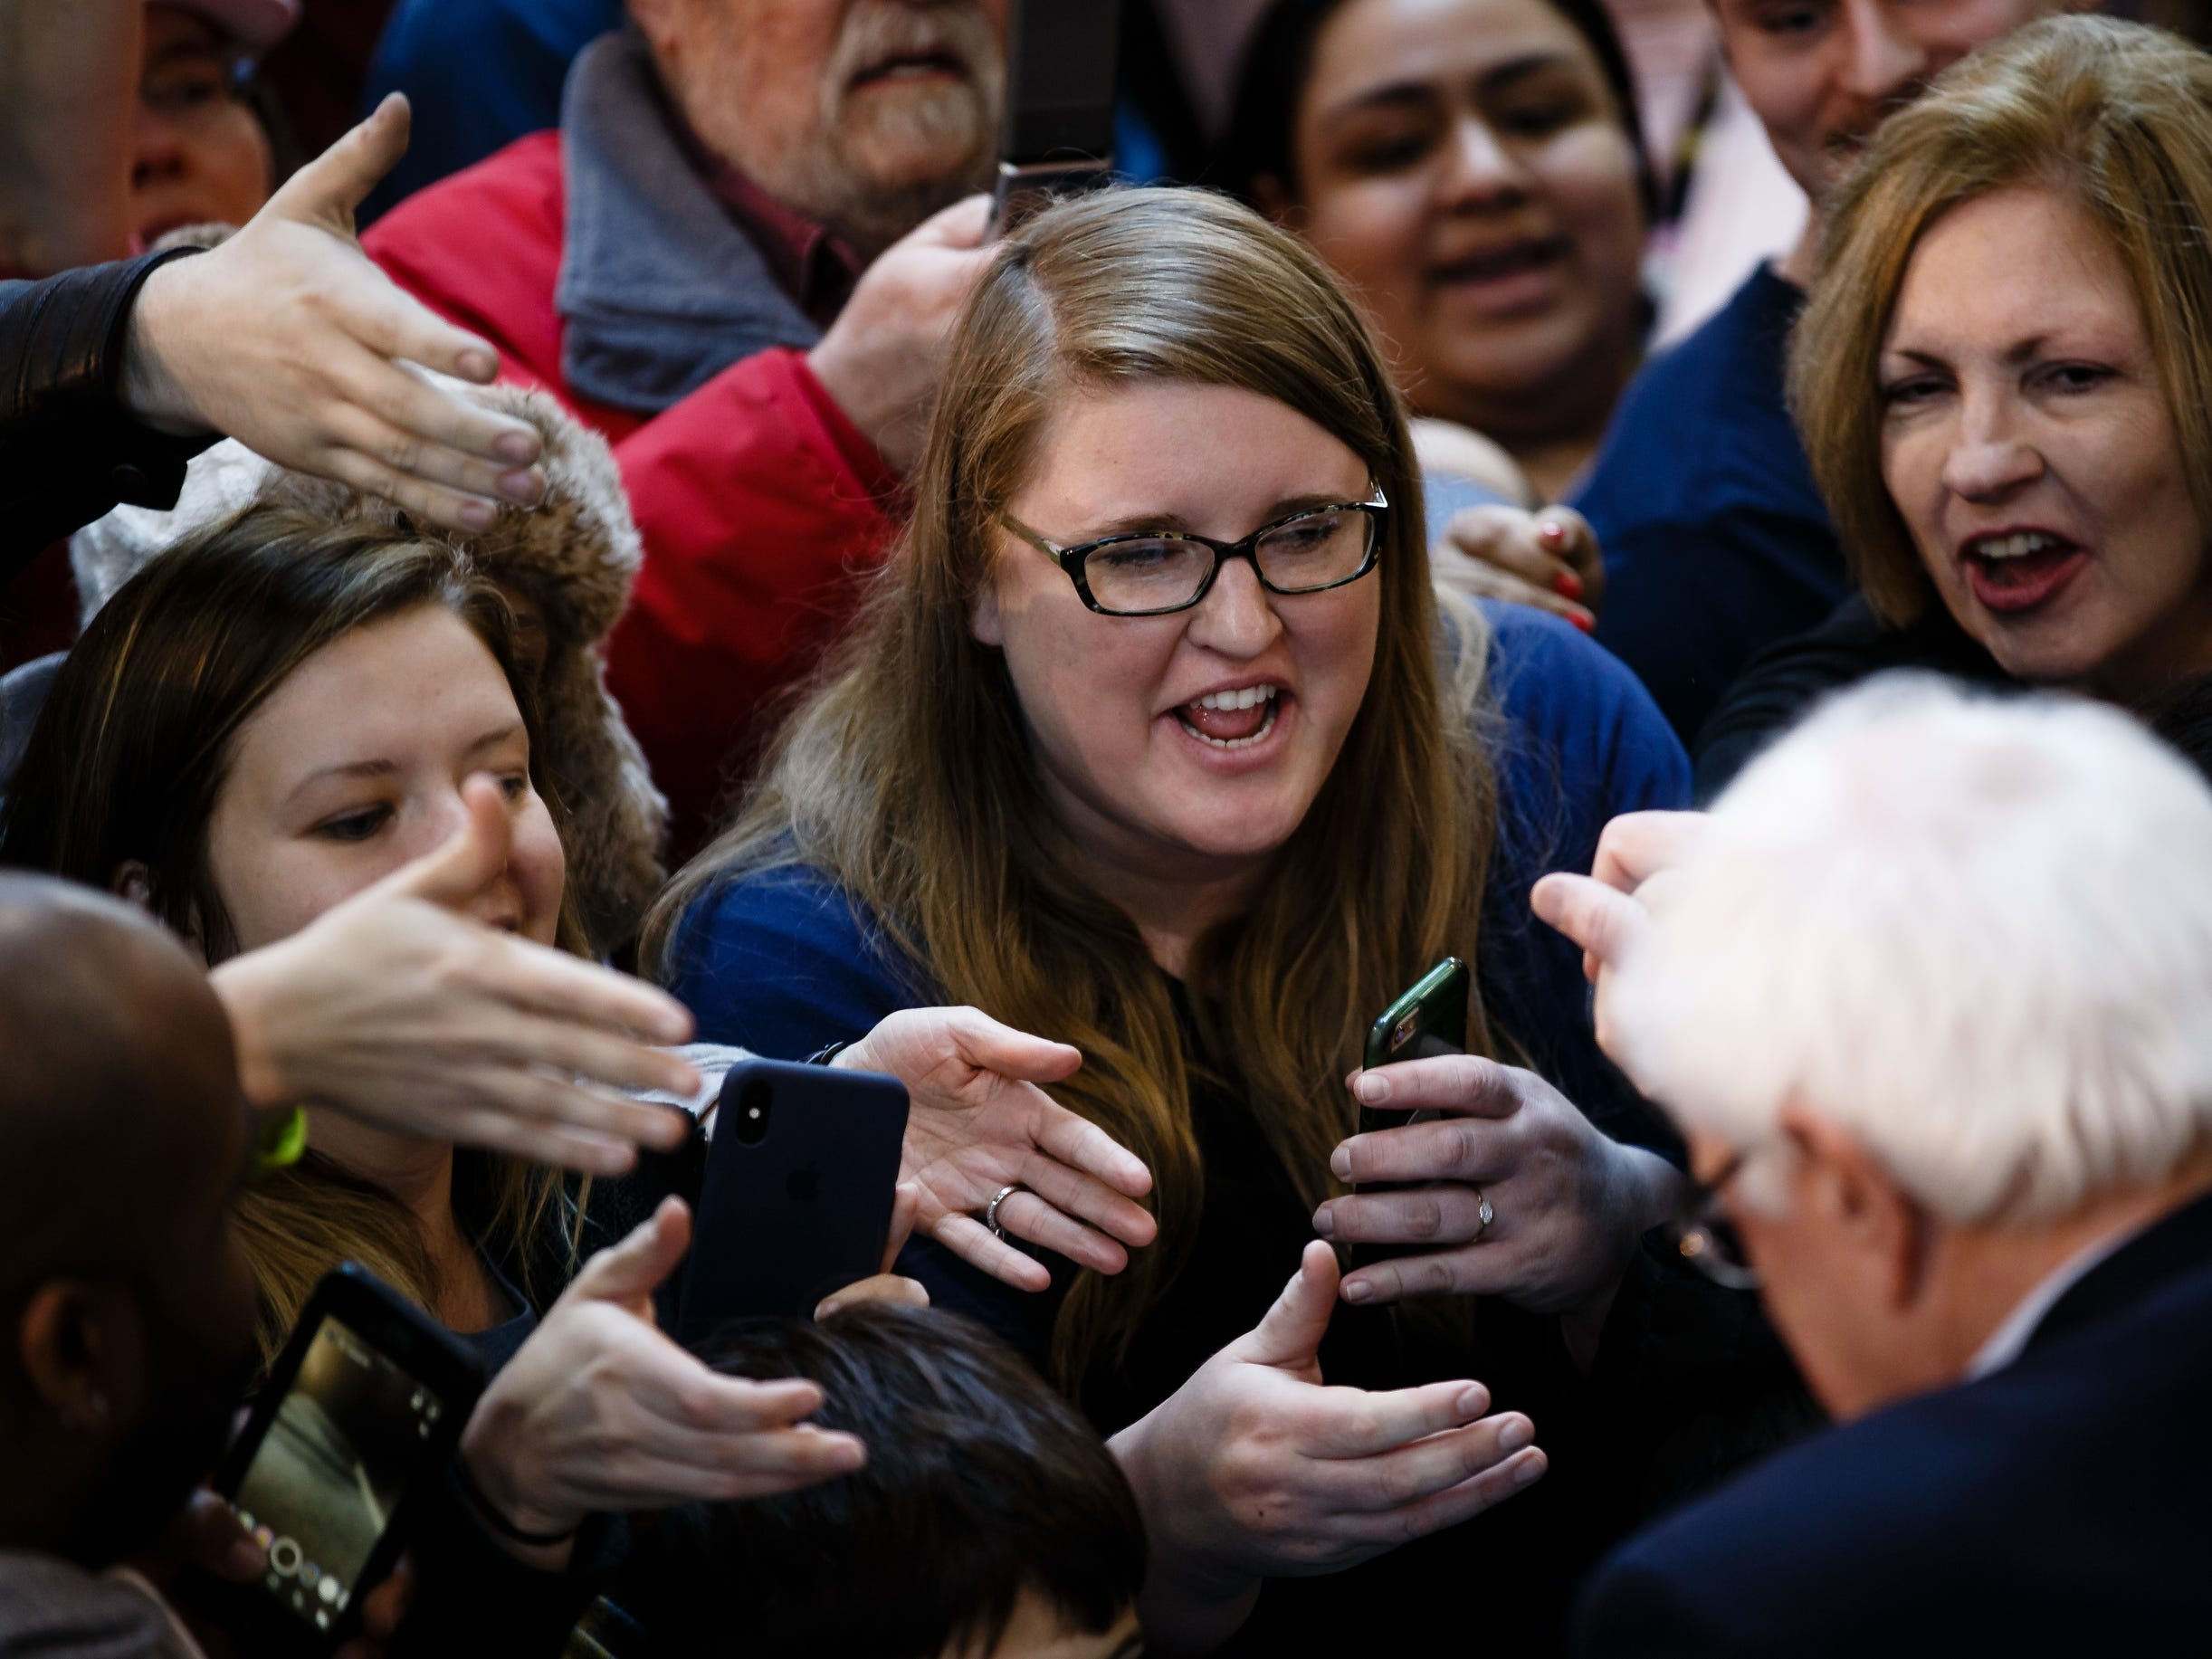 People wait for a chance to shake the hand of democratic presidential candidate Bernie Sanders during a rally at the Iowa State Fairgrounds on Saturday, March 9, 2019 in Des Moines.